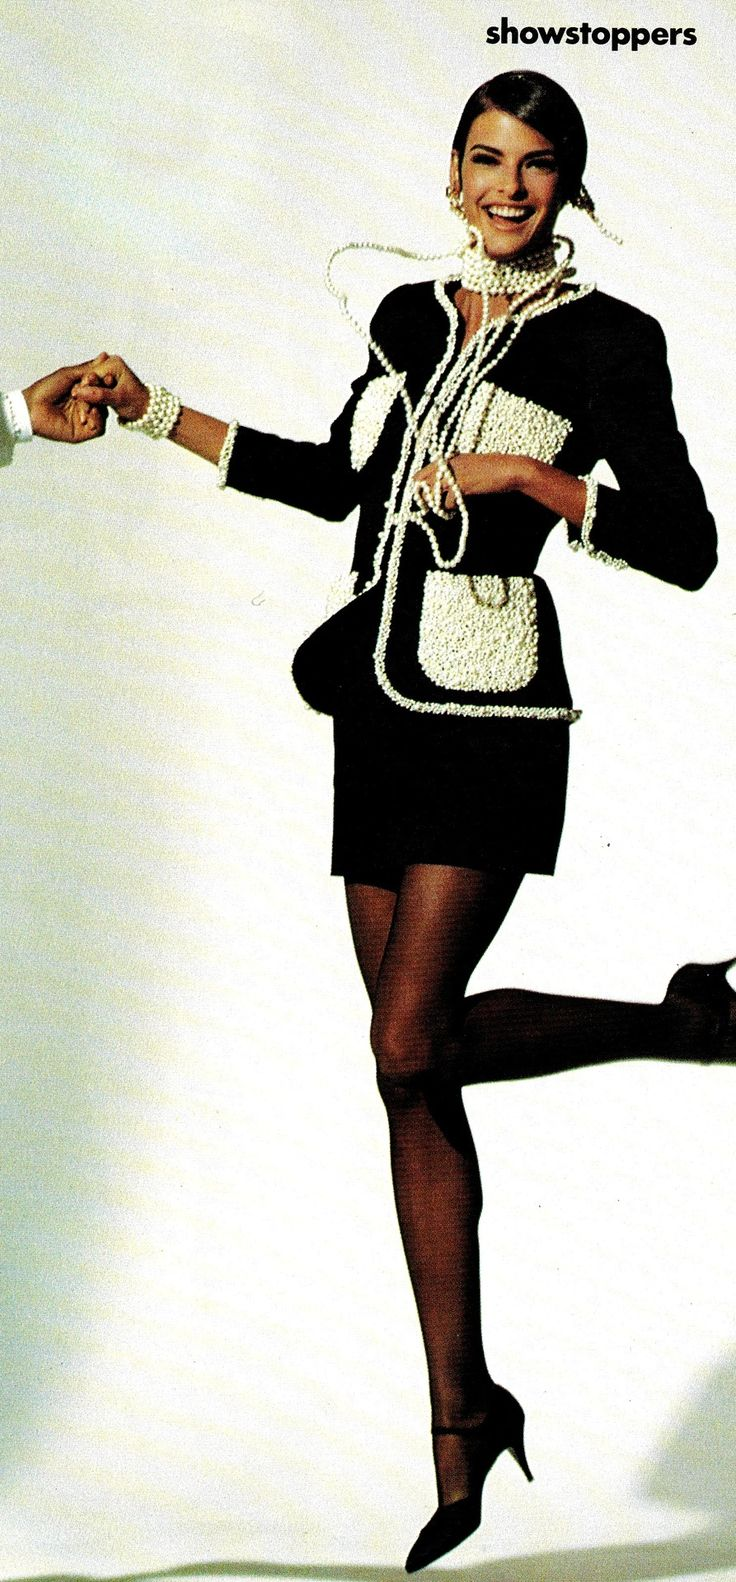 vintagebinger:  Linda Evangelista was undeniably the face of the 90s. Here she is in a black Chanel suit with pearl-encrusted pockets and trim. Coco would have been proud. Photo from Vogue, March 1990.